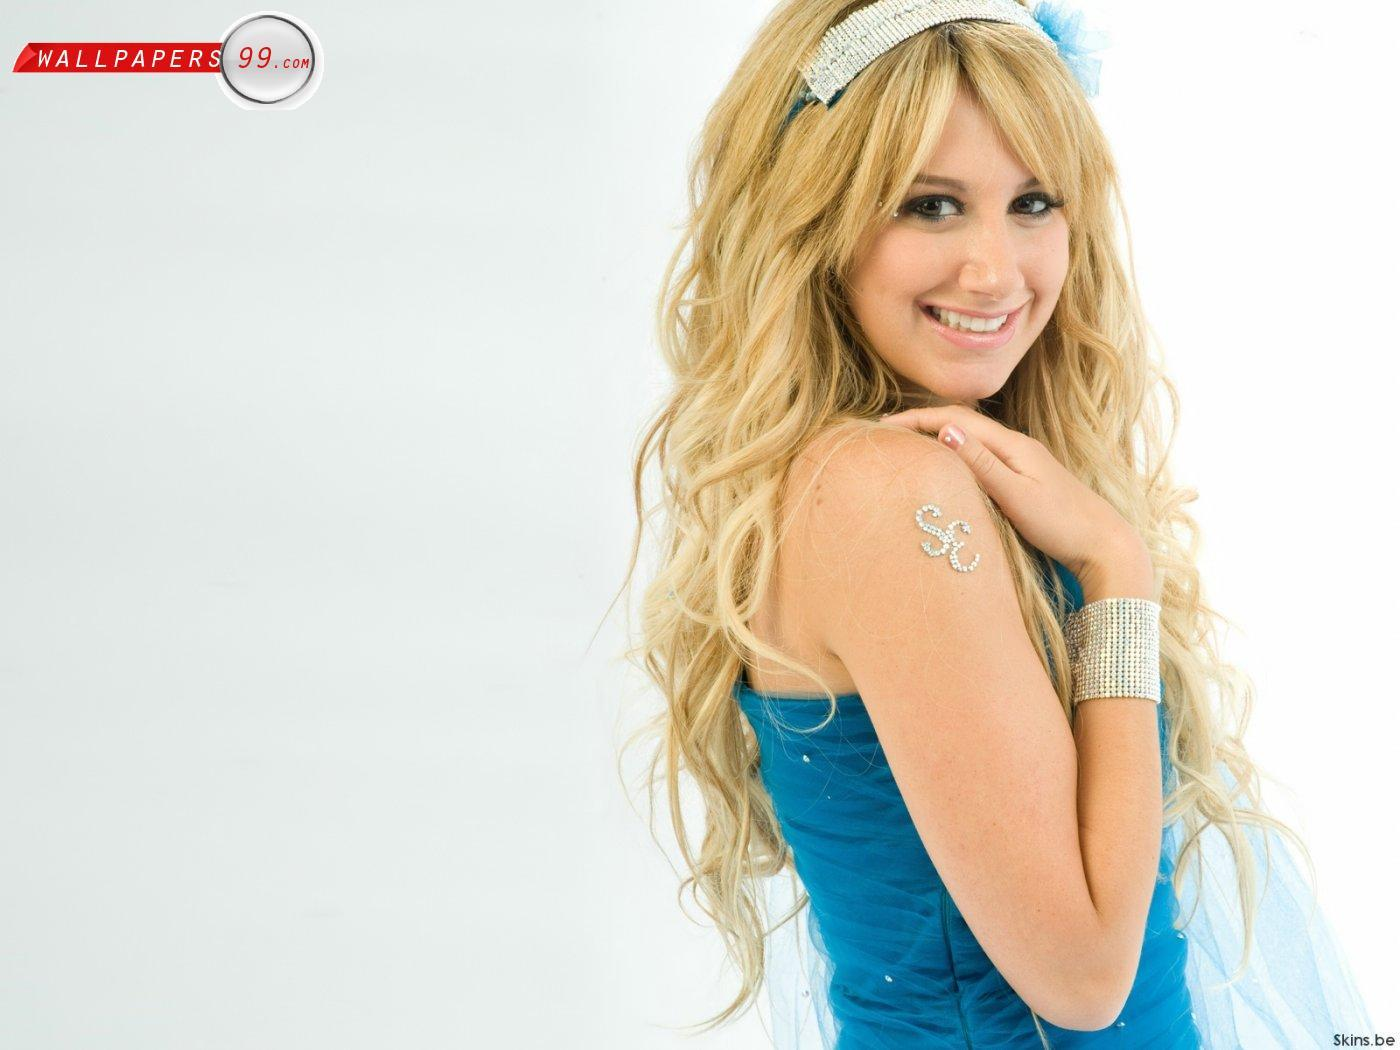 ashley tisdale 4 wallpapers - photo #36